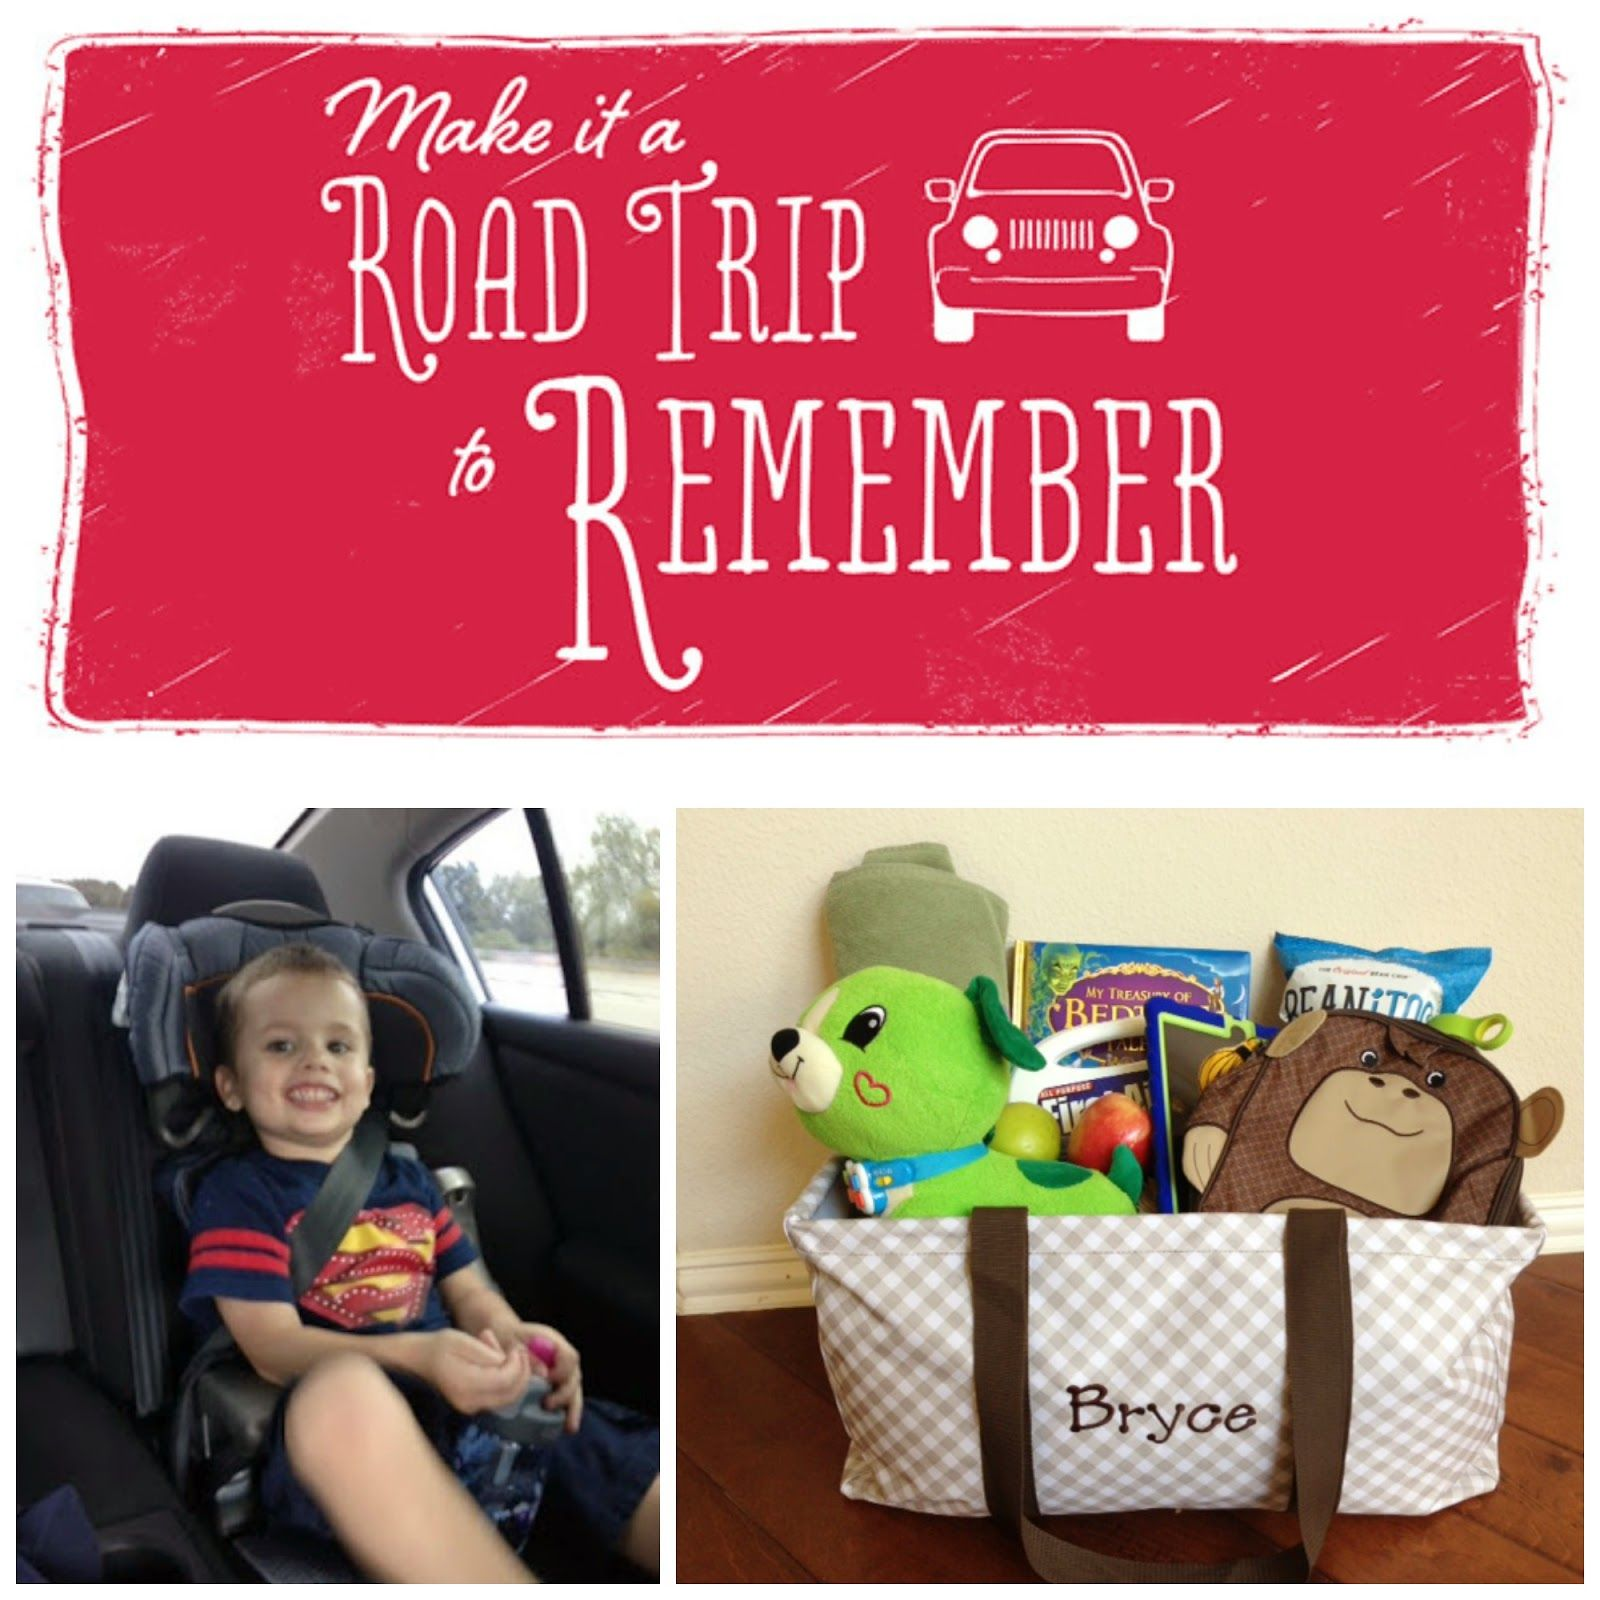 5 Tips for Road Trips with Preschoolers ~ Trendy Mom Reviews #Travel #Tips #RoadTrip